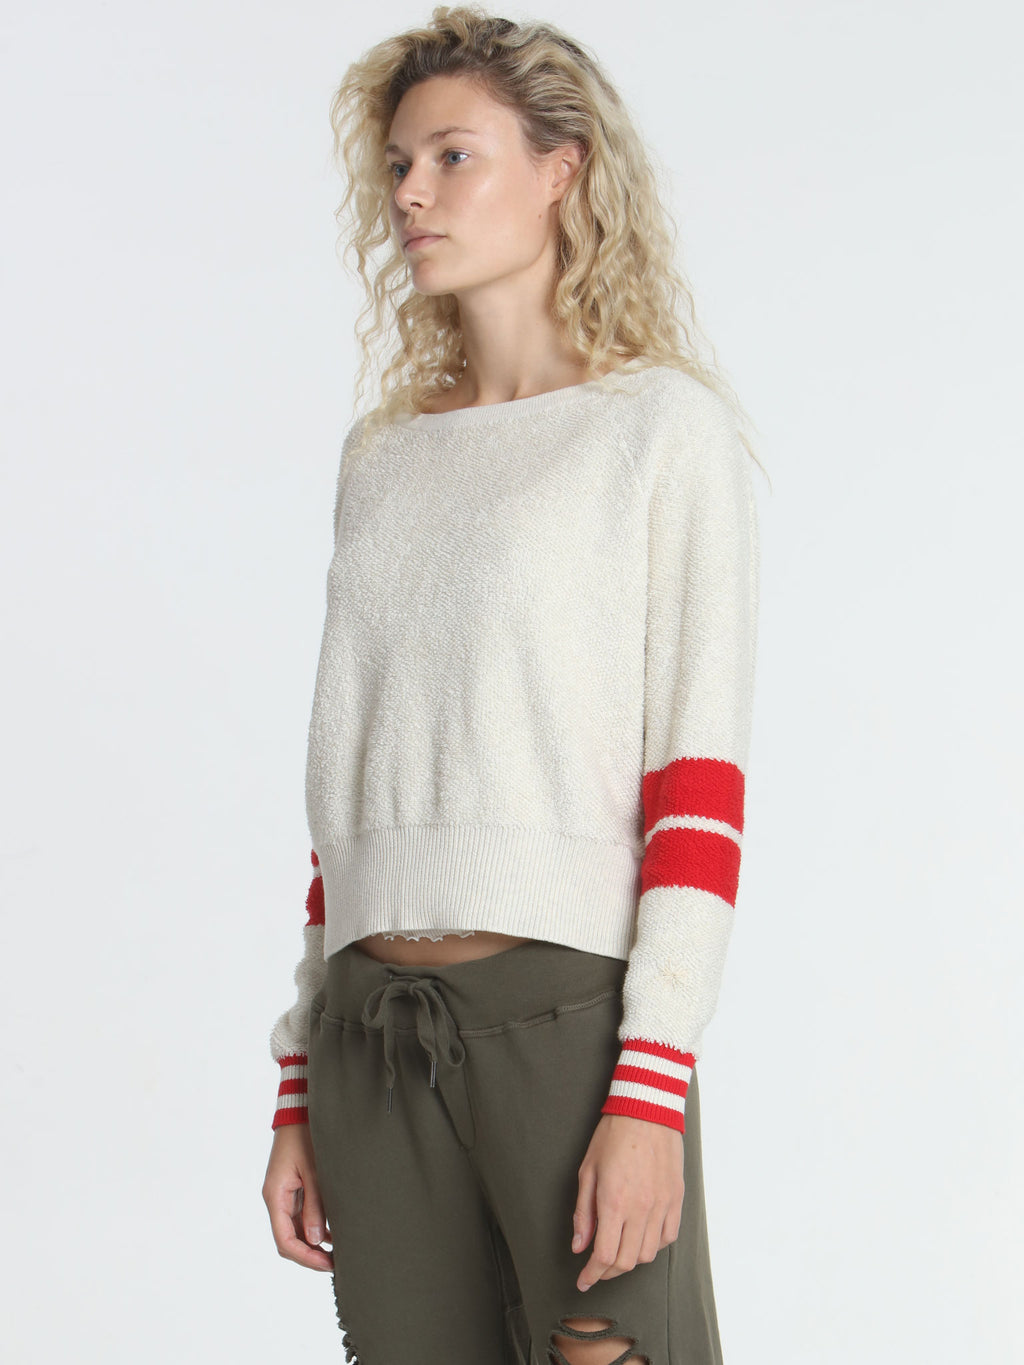 Loopy Crop Top - Ecru